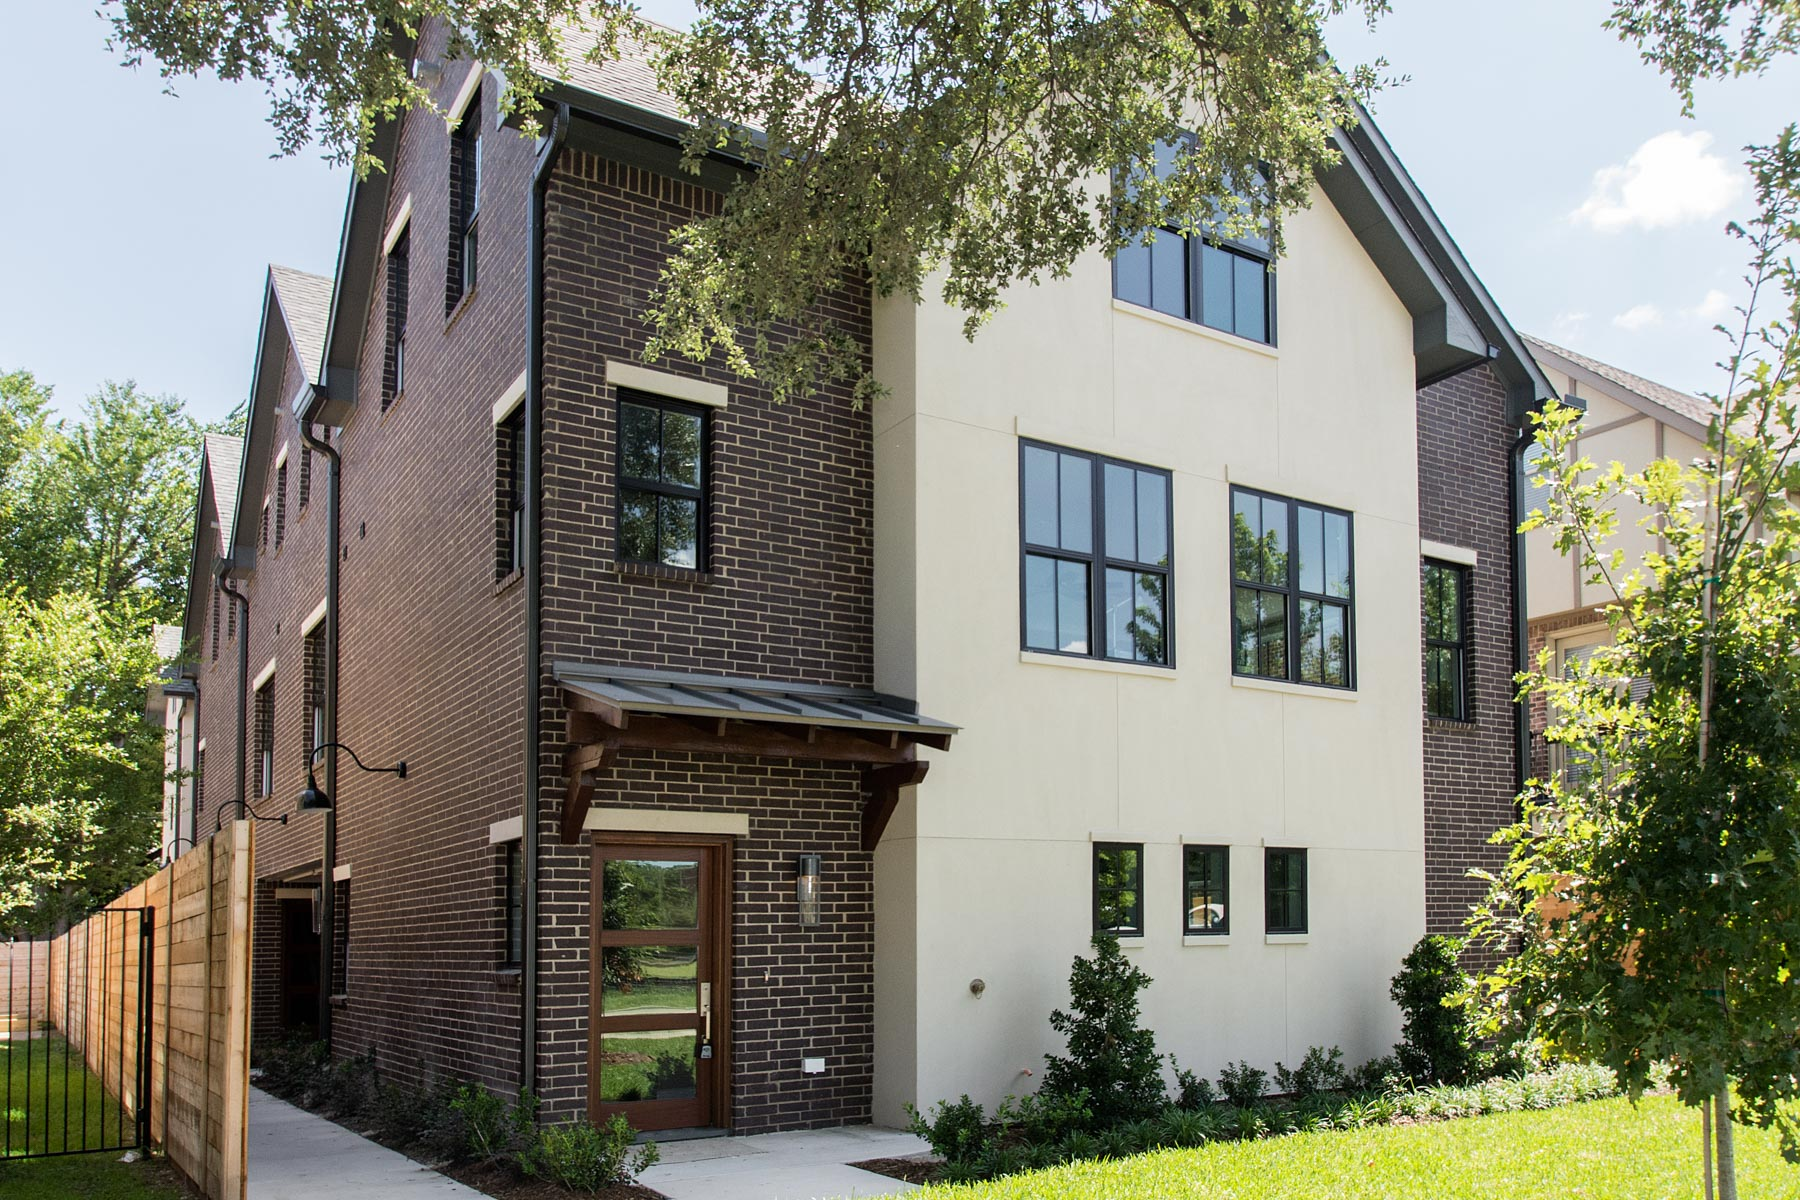 Maison unifamiliale pour l Vente à 3-Story Contemporary New Construction 4121 Grassmere Ln 2 Dallas, Texas, 75205 États-Unis